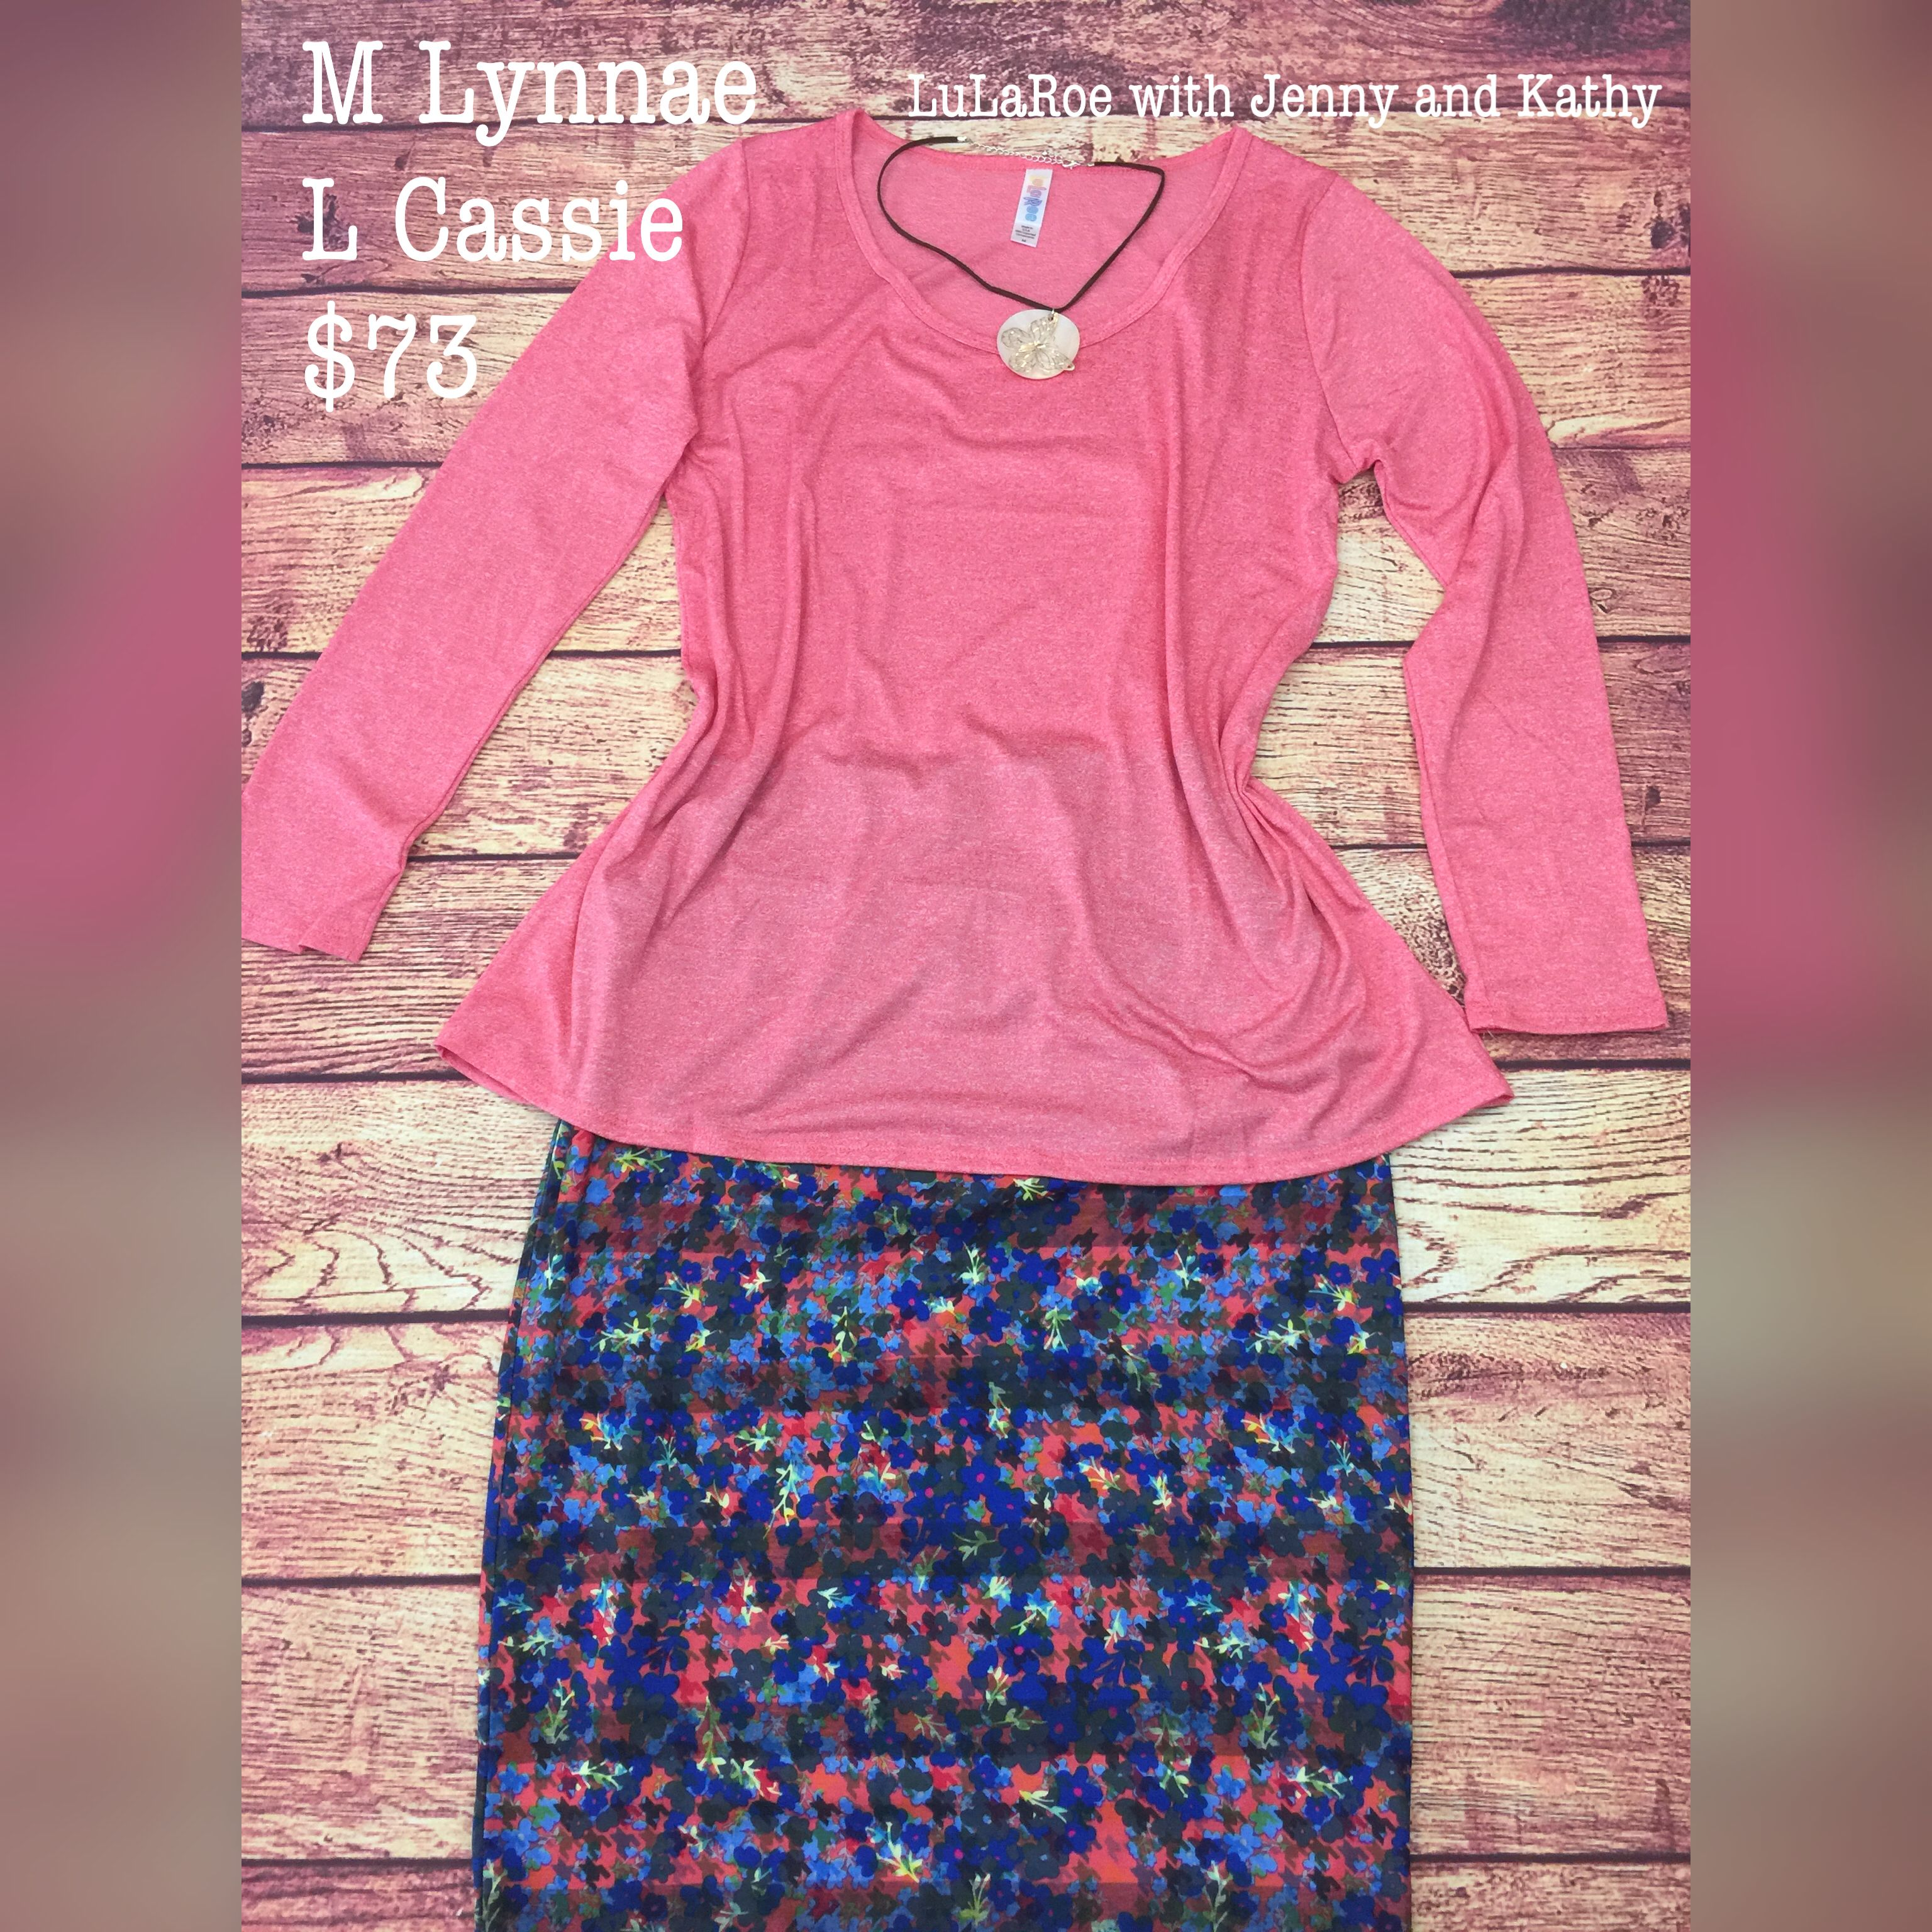 e96d8cd5d34 LuLaRoe Lynnae and Cassie are a great business casual work outfit ...